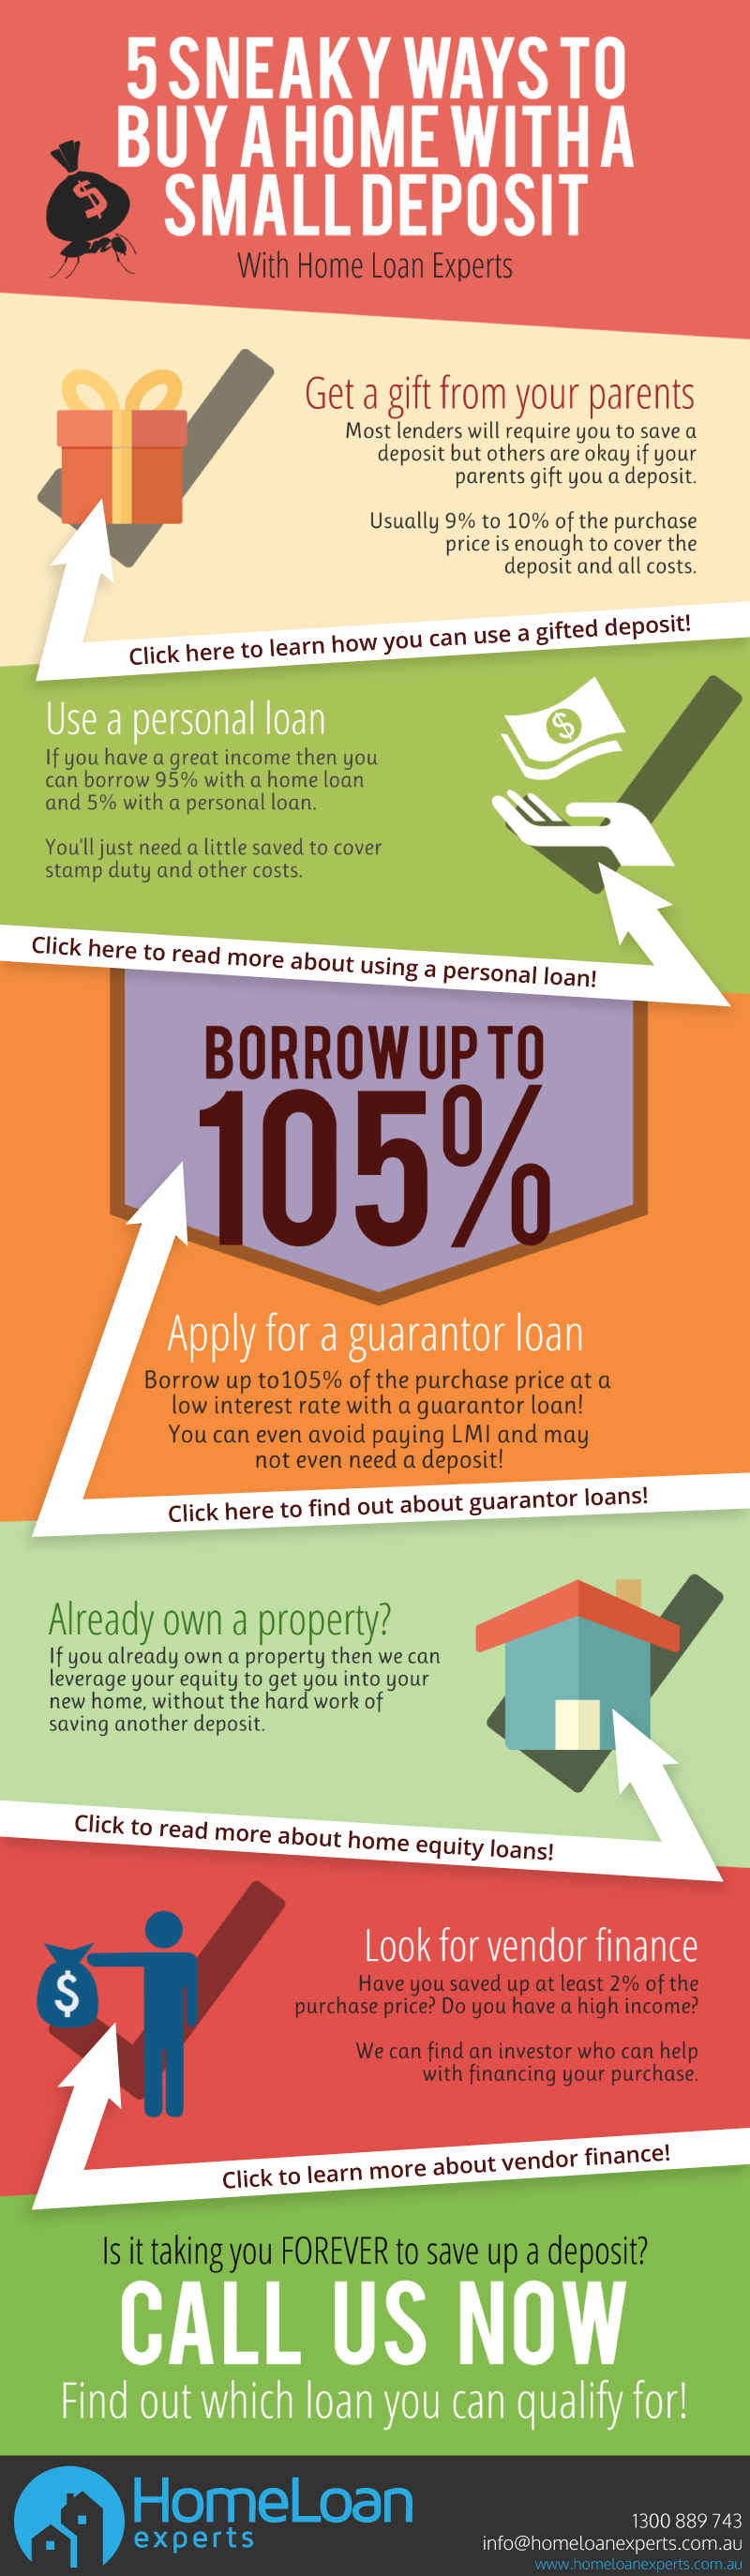 5 sneaky ways to buy a home with a small deposit infographic